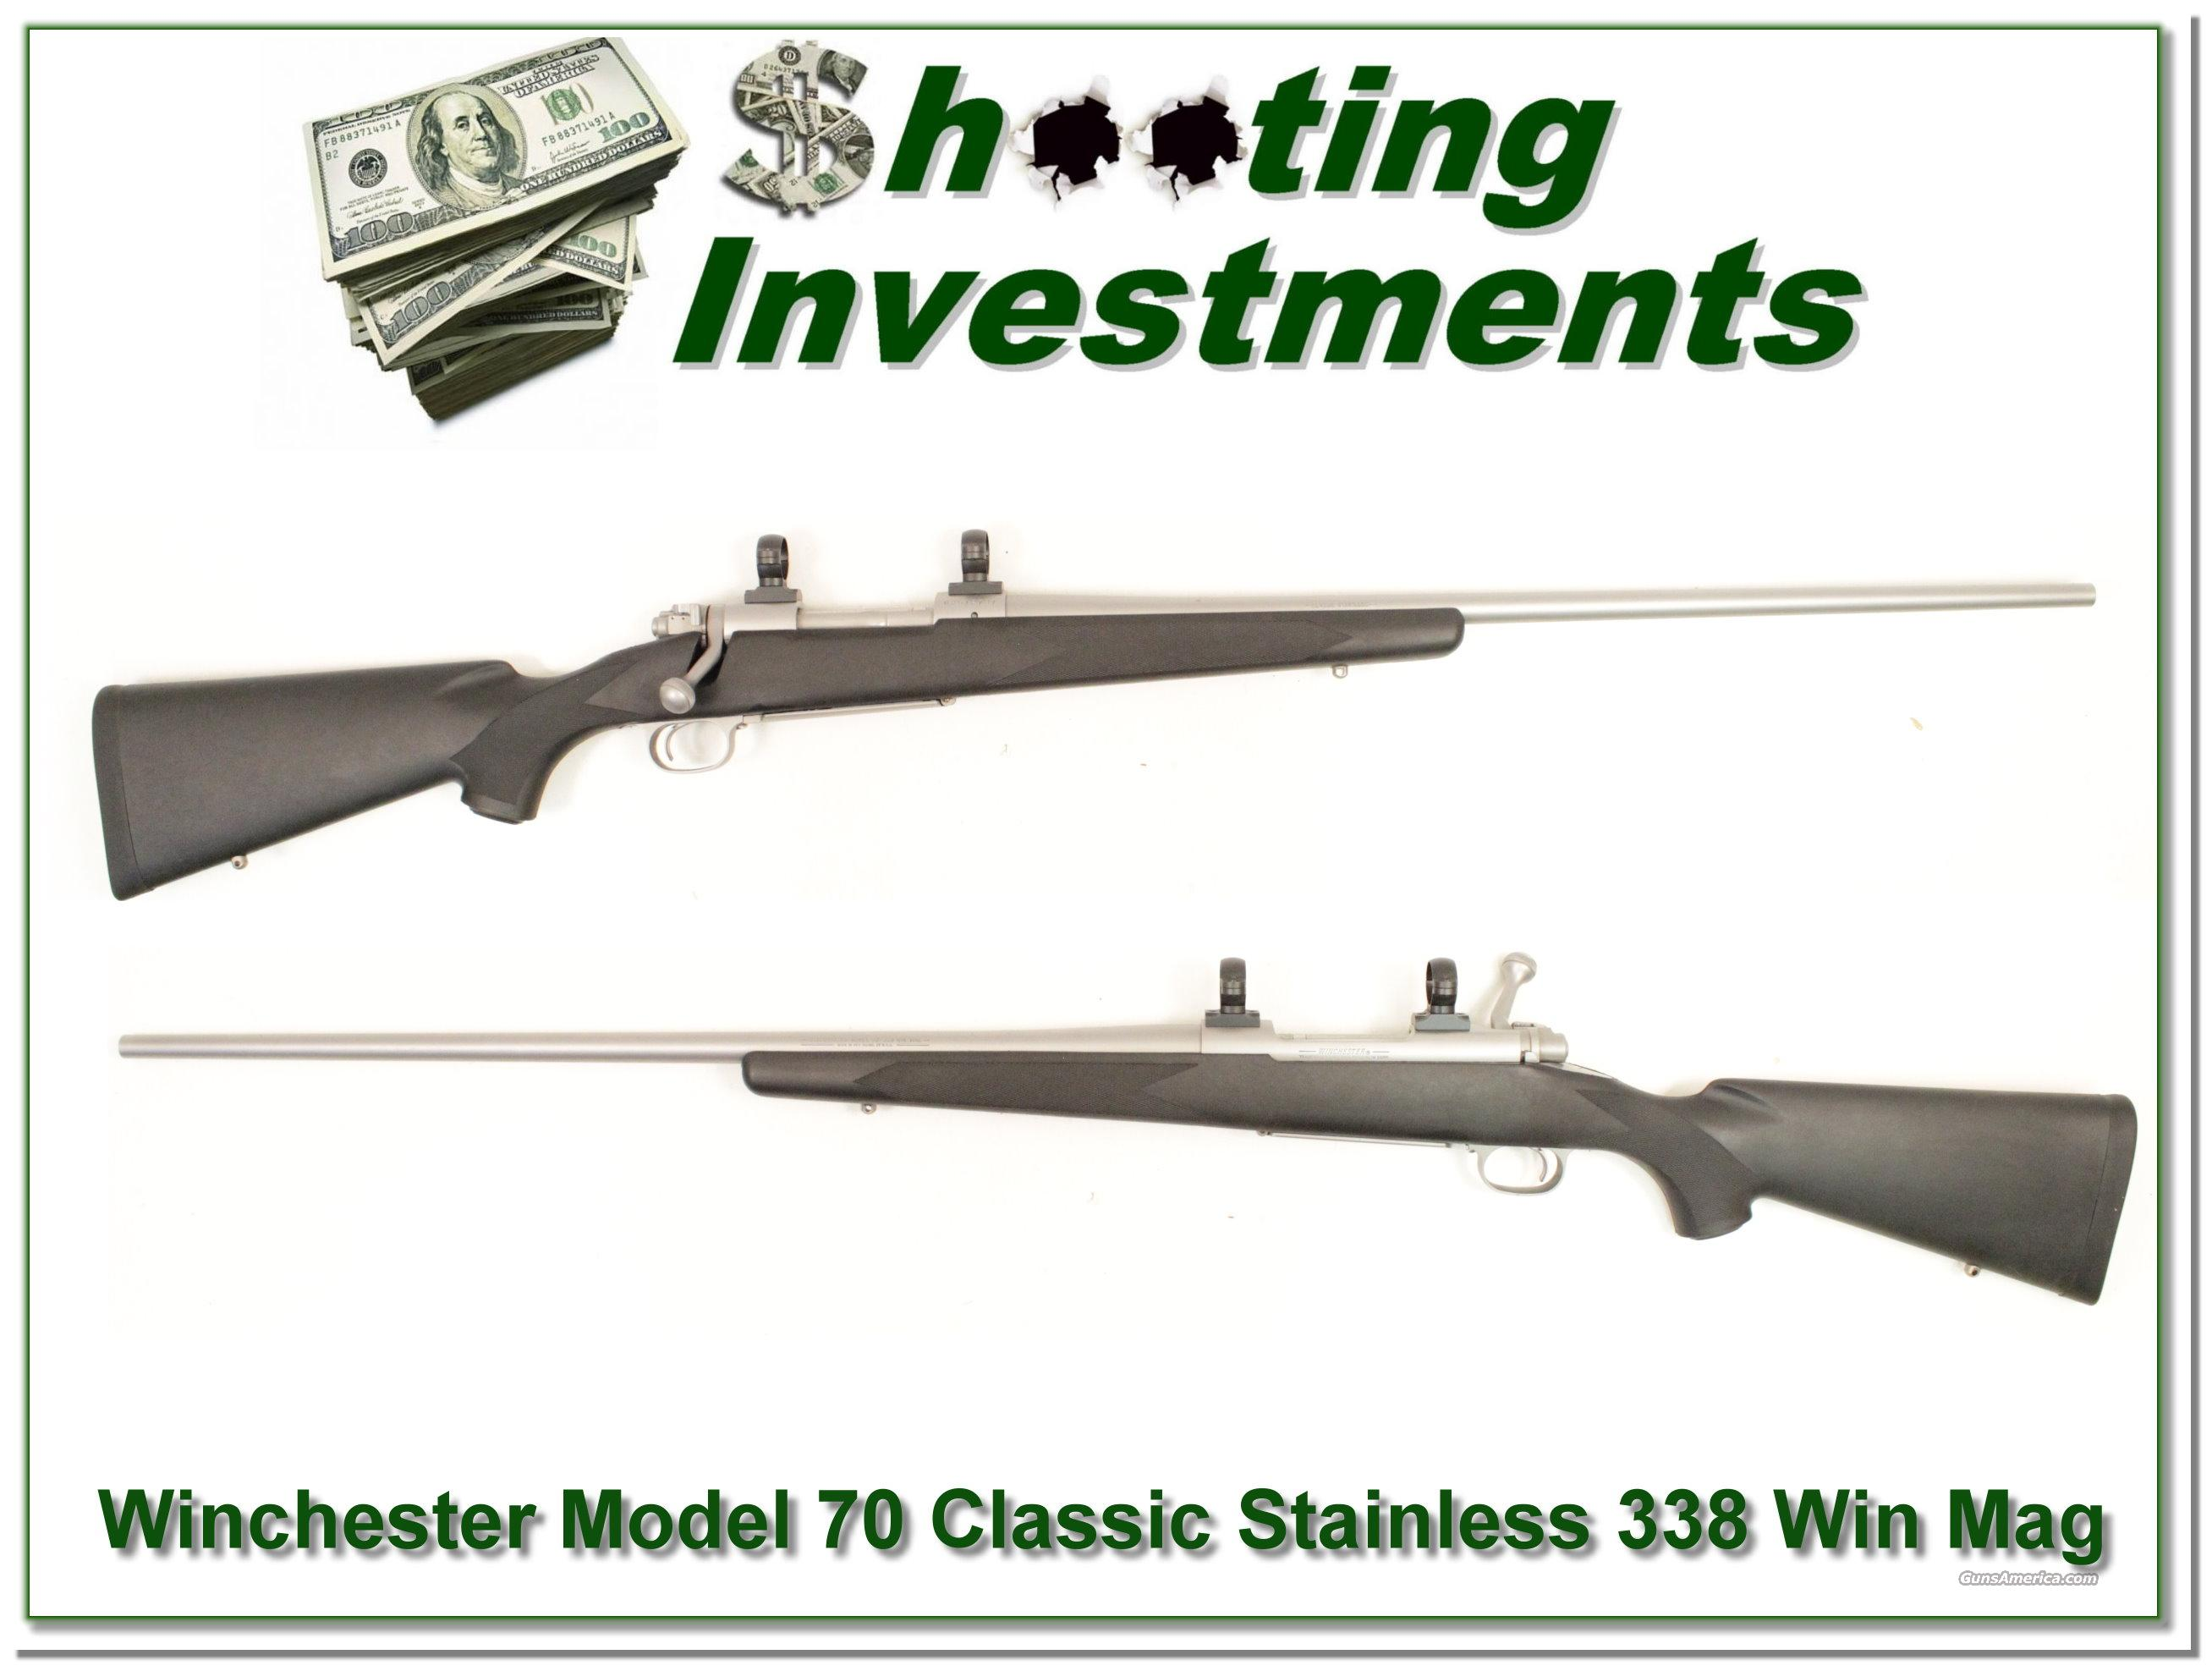 Winchester Model 70 Classic Stainless 338 Win Mag  Guns > Rifles > Winchester Rifles - Modern Bolt/Auto/Single > Model 70 > Post-64